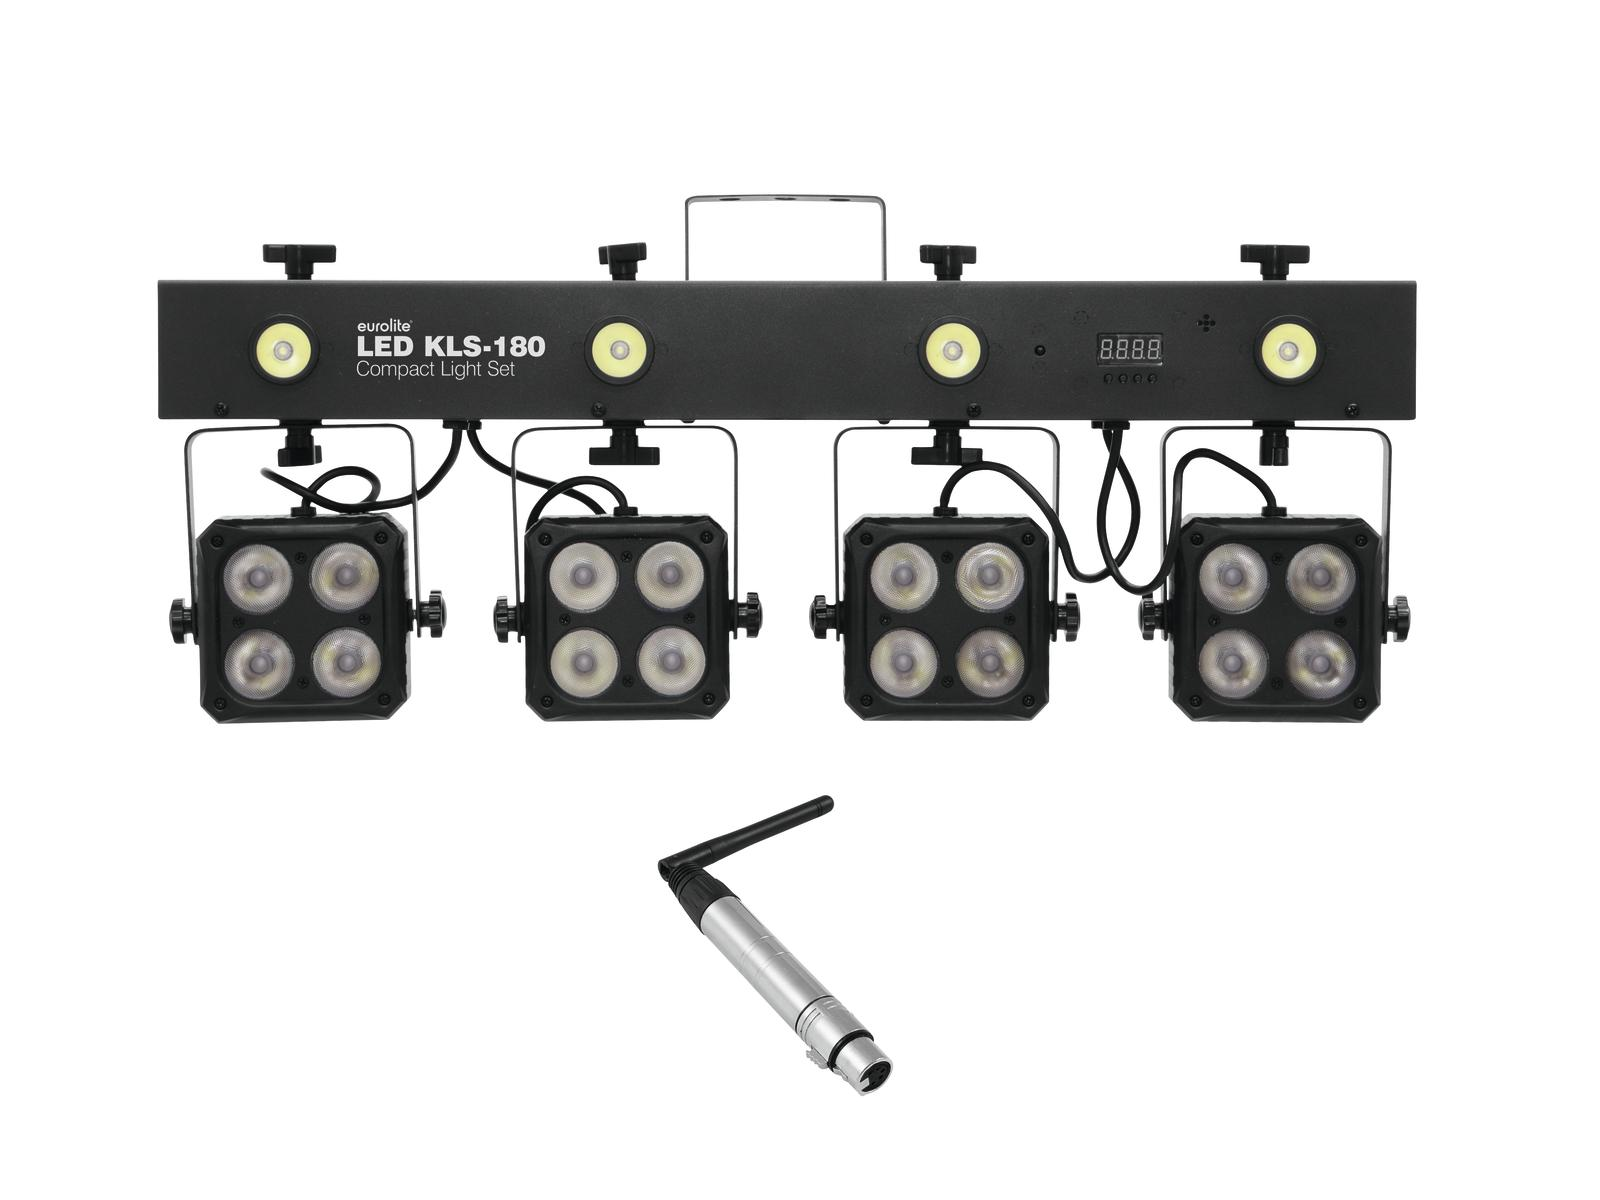 EUROLITE Set LED KLS-180 + QuickDMX ricevitore Wireless